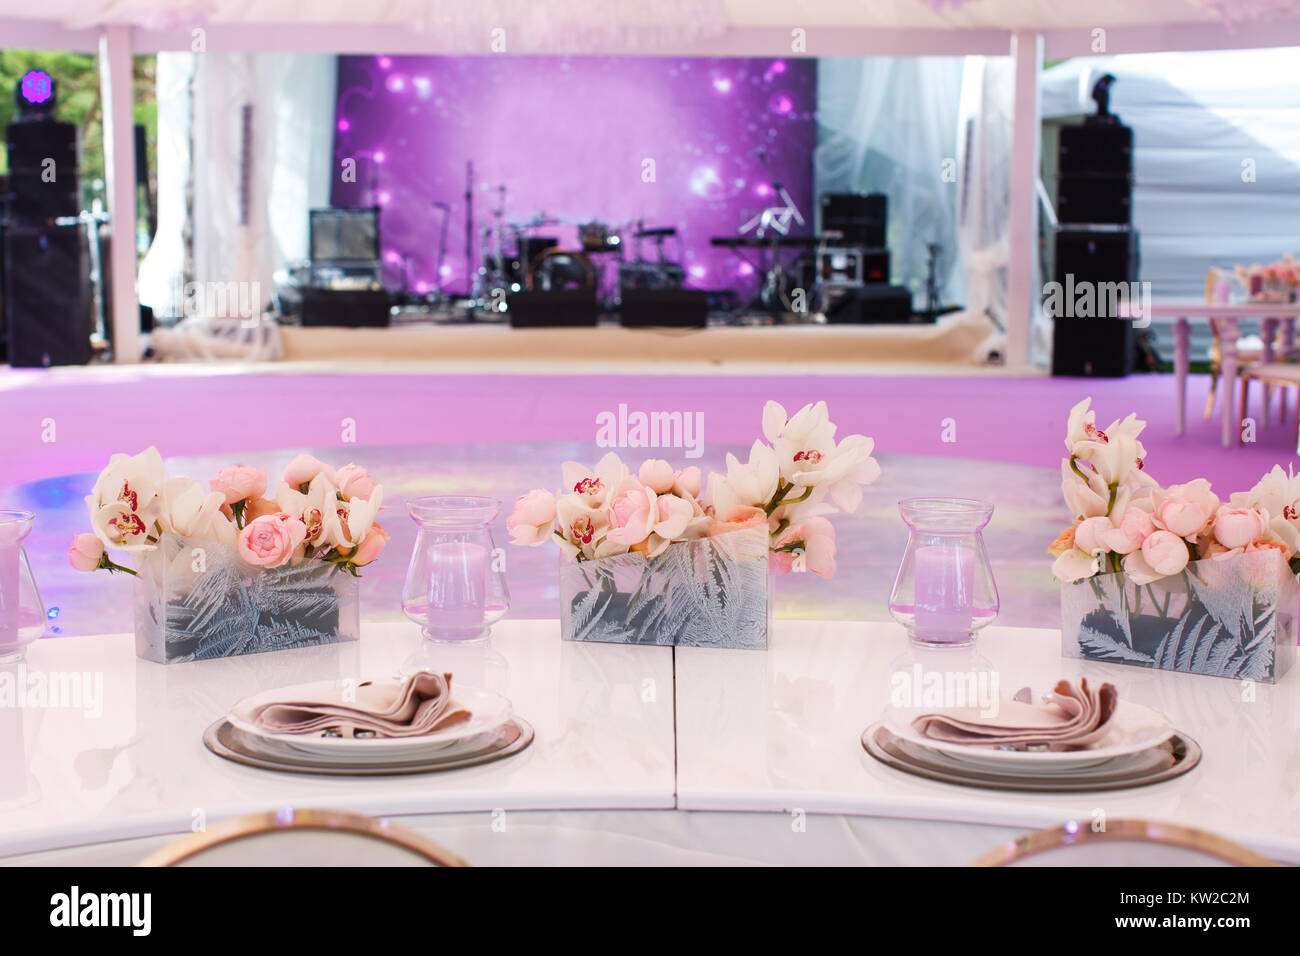 Table set for wedding or another catered event dinner Stock Photo ...